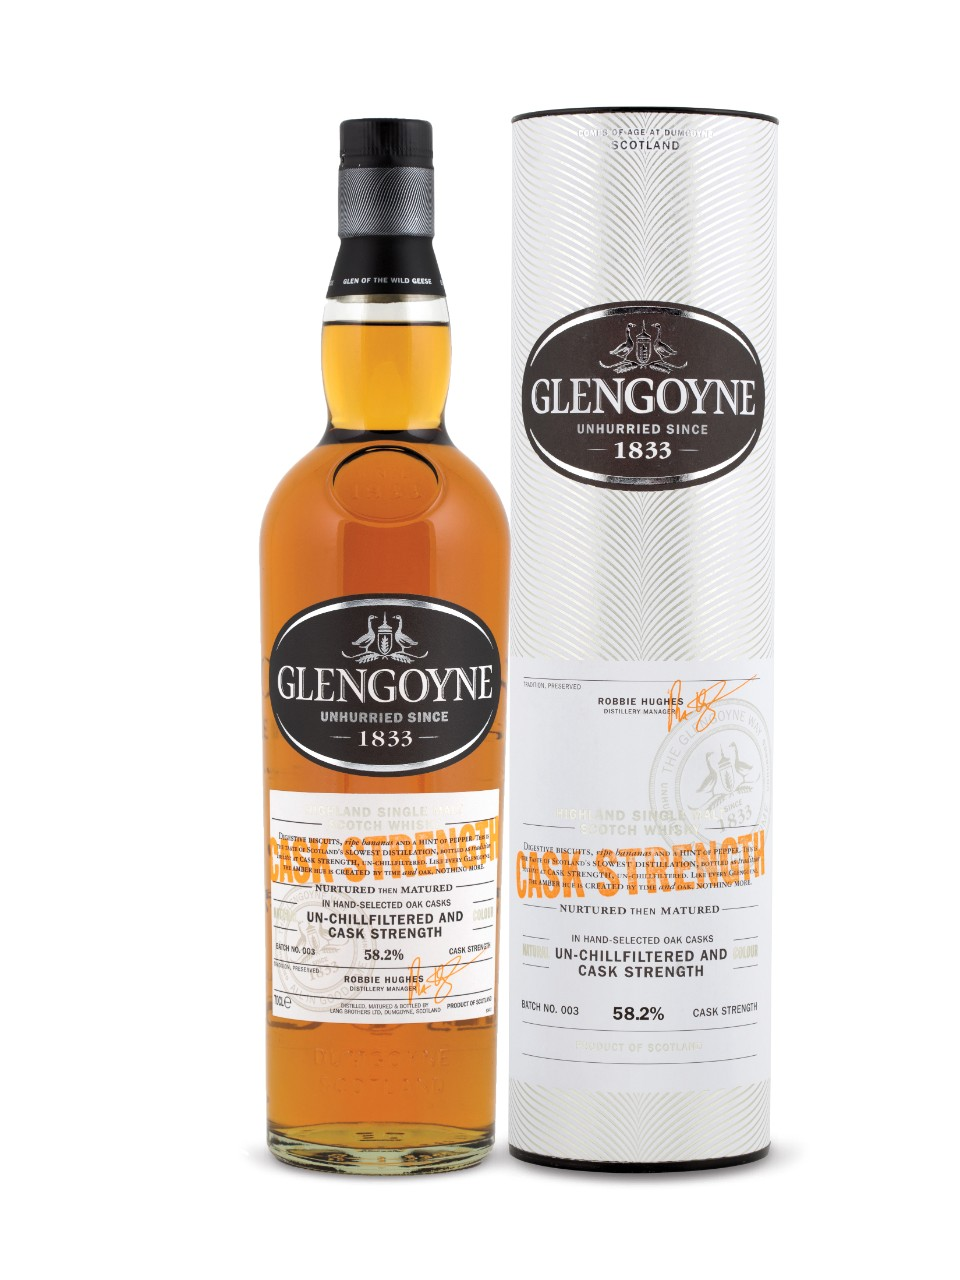 Glengoyne Cask Strength Old Highland Single Malt                                                                                -B